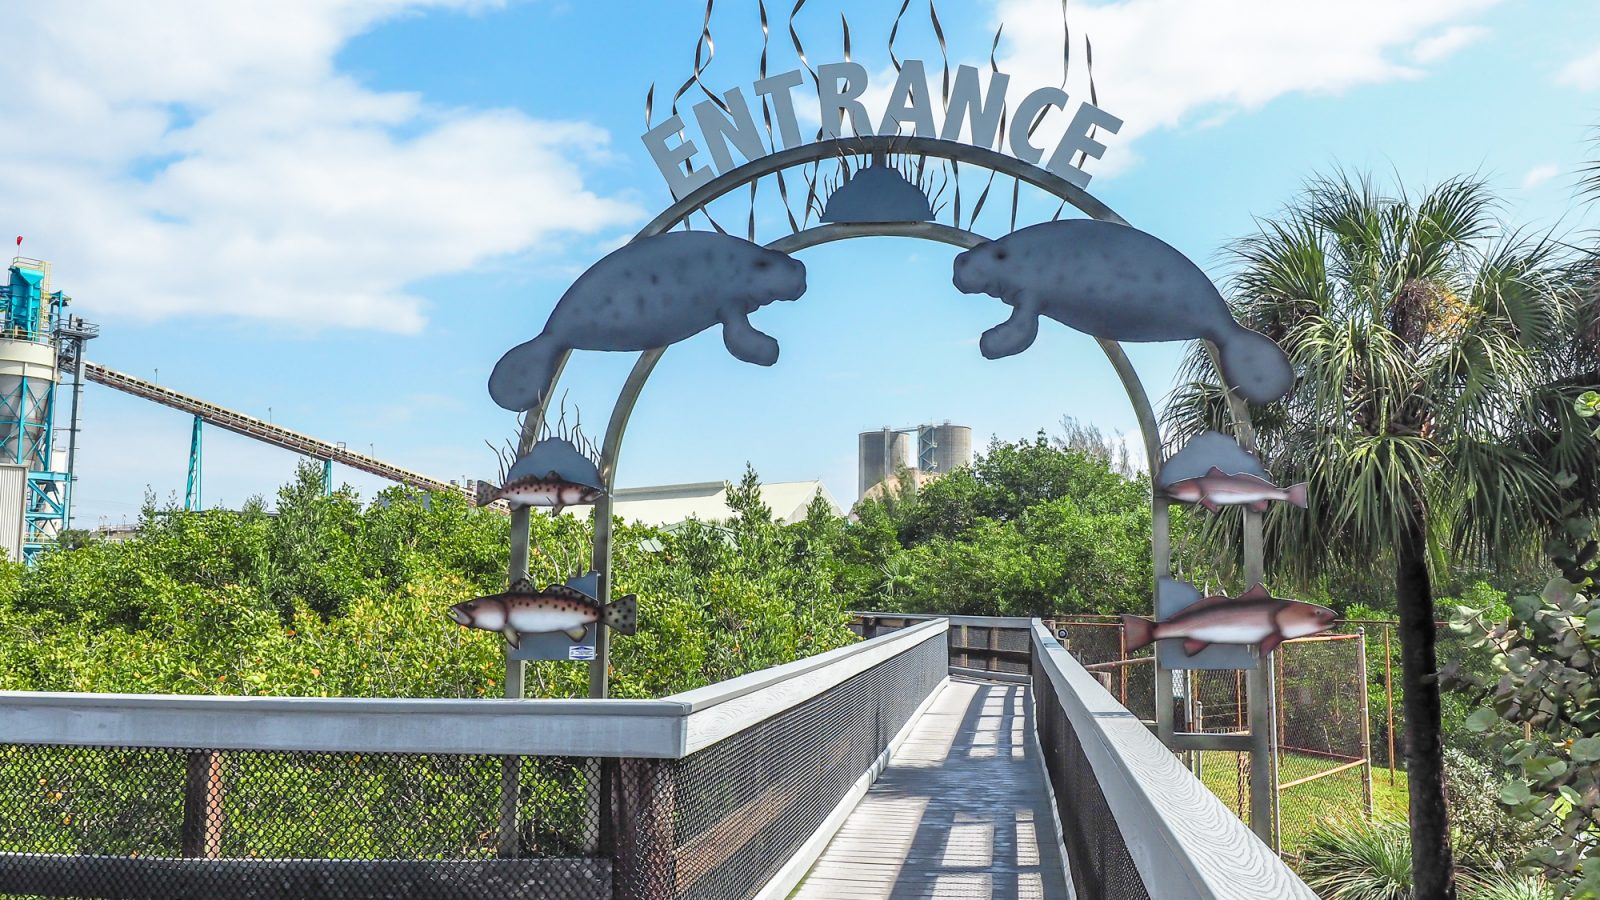 7 Terrific Tours to Take in Tampa, Florida // Big Cats, Beers, Buccaneers, and Beyond! | The entrance to the Manatee Viewing Center at Tampa Electric Company, Apollo Beach, Florida | #tampa #florida #manatee #powerplant #traveltips